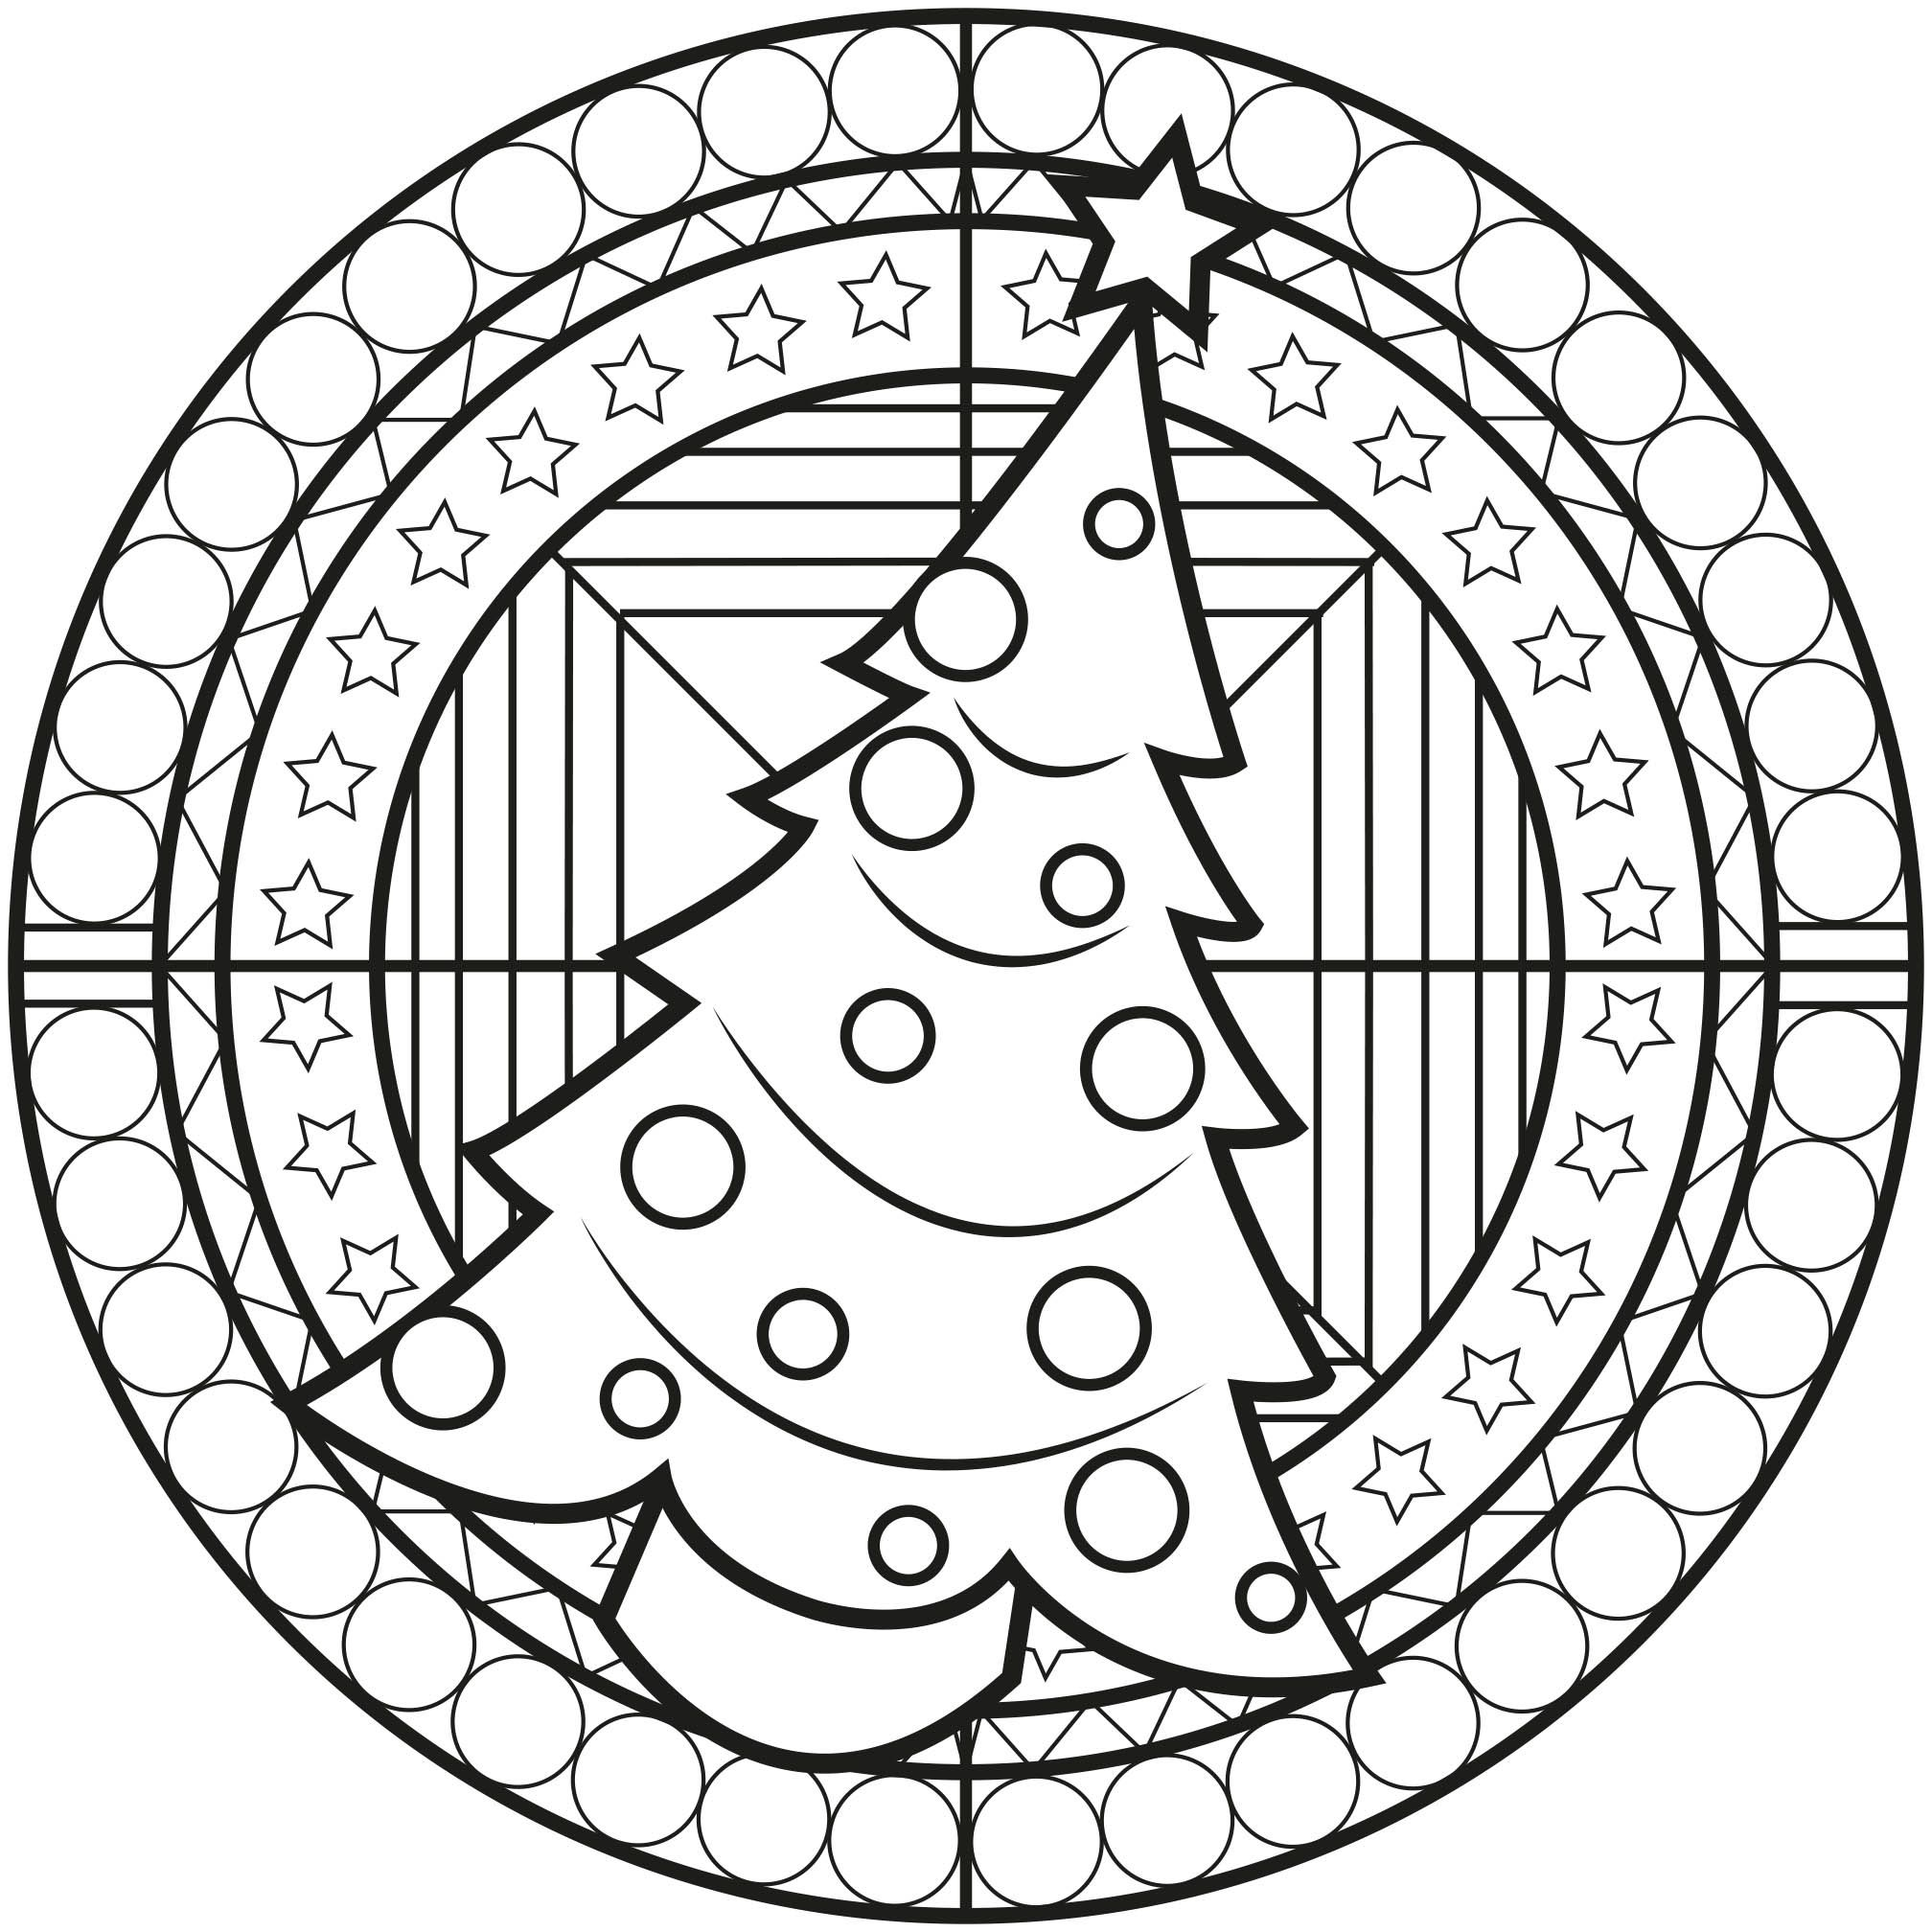 Christmas Is Coming Get In The Ambiance With This Christmas Mandala From The Gallery Man Christmas Mandala Christmas Coloring Pages Mandala Coloring Pages